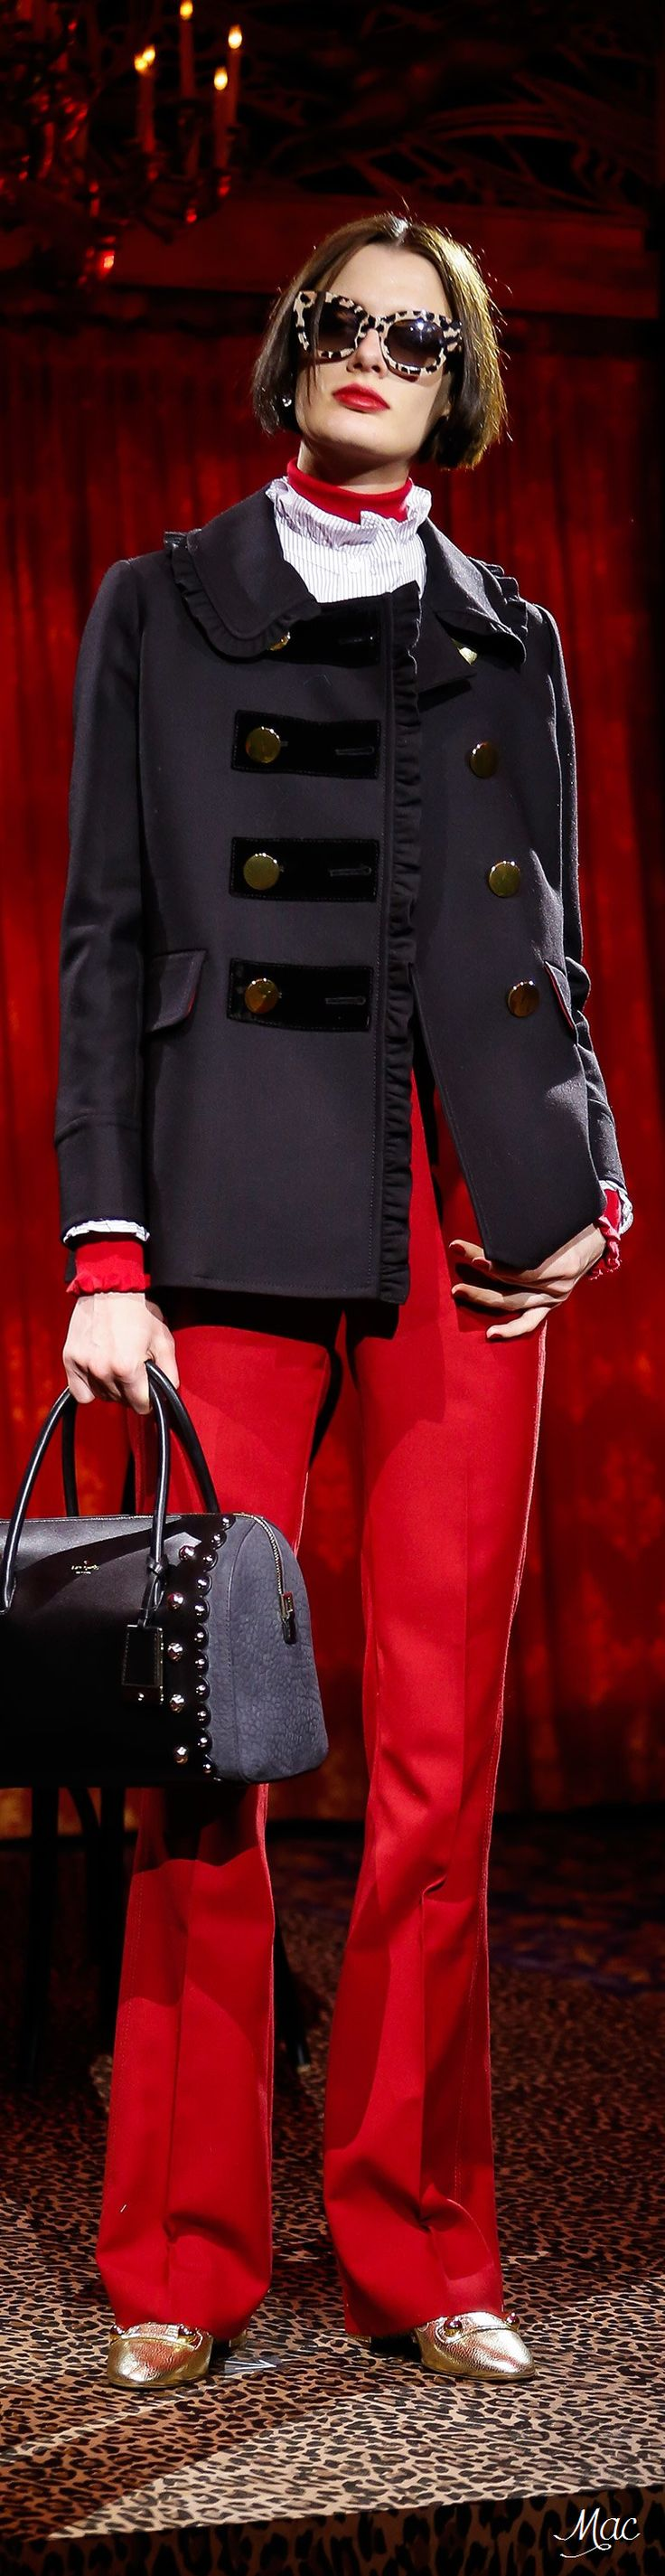 Kate Spade New York Fall 2017 RTW